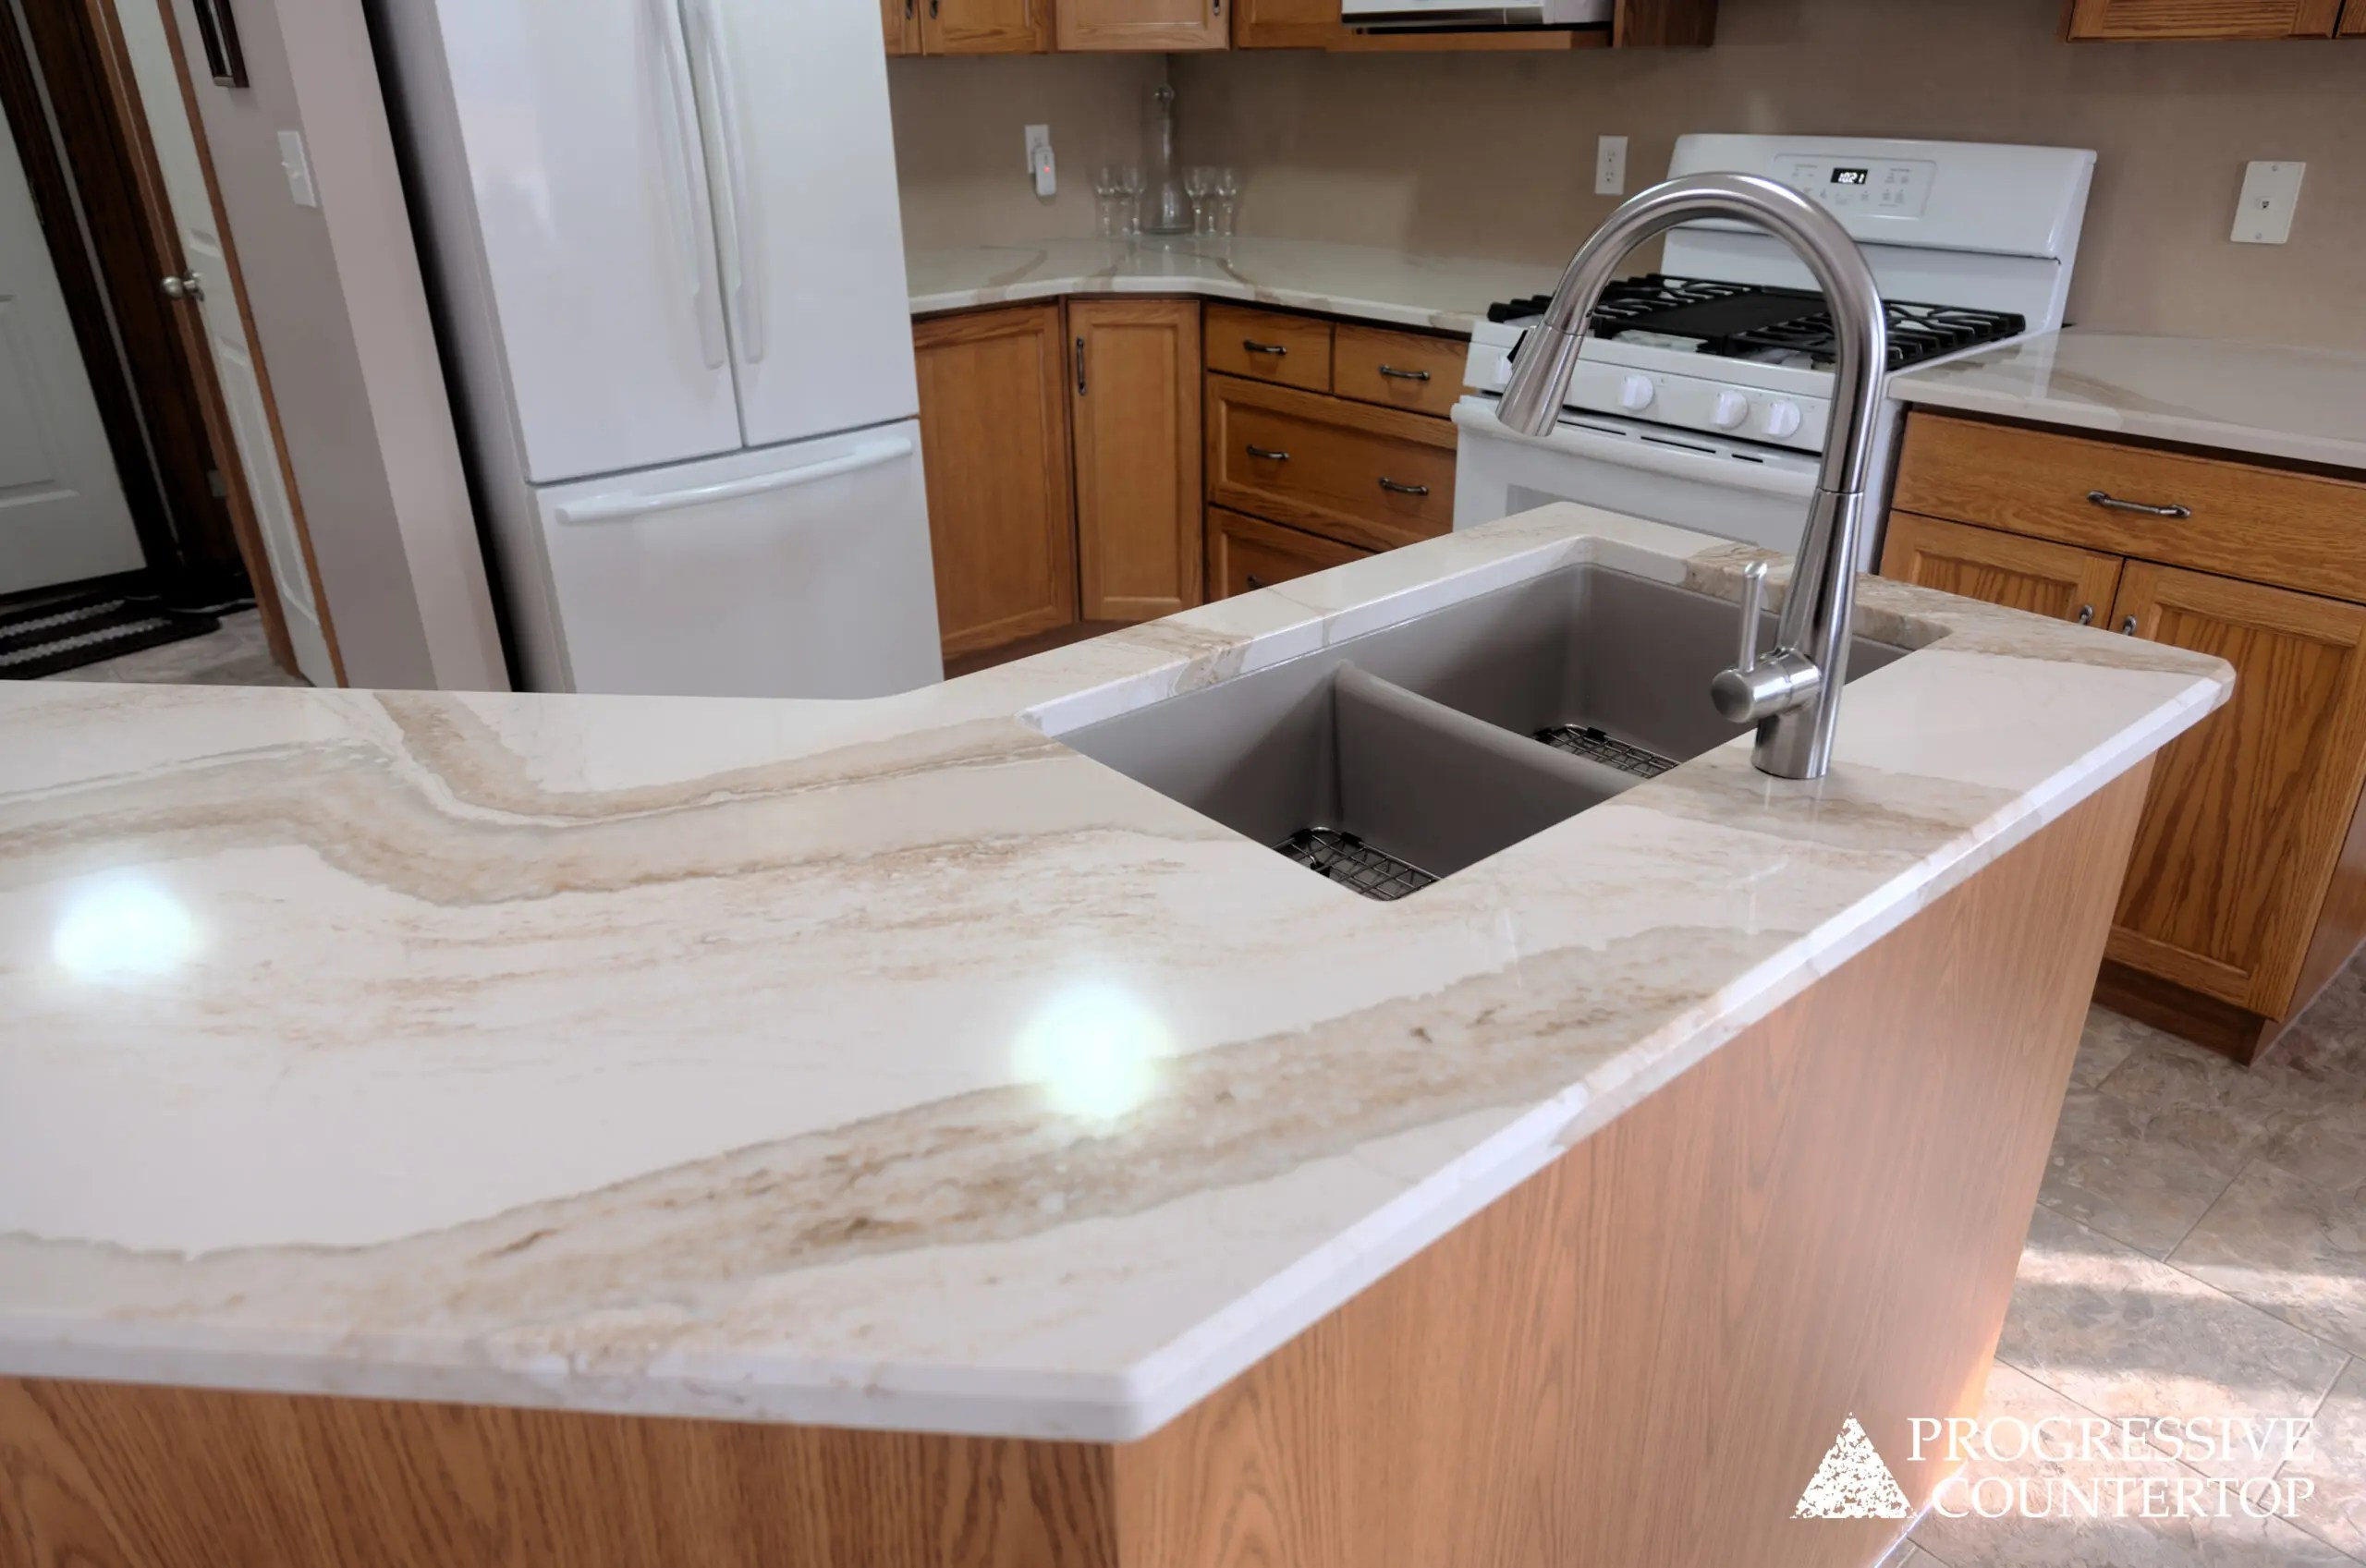 Https Www Progressivecountertop Com Countertop Album Cambria Brittanicca Gold Kitchen Countertop Petrolia Ontario